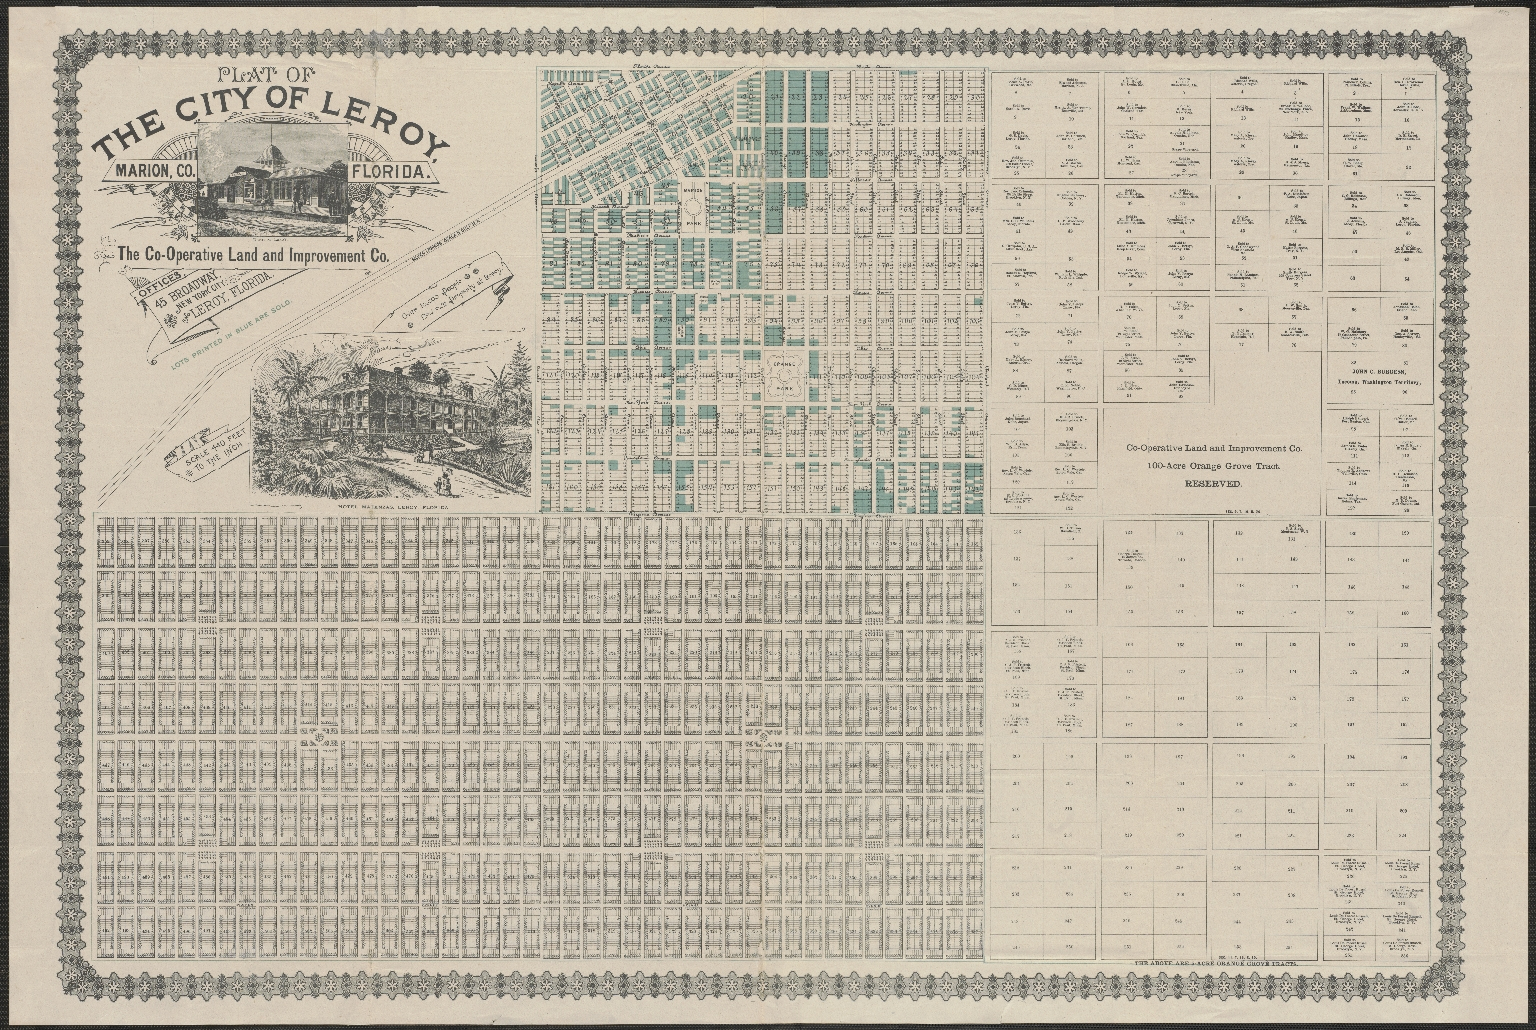 Plat Of The City Of Leroy, Marion County, Florida - Touchton Map Library - Marion County Florida Plat Maps